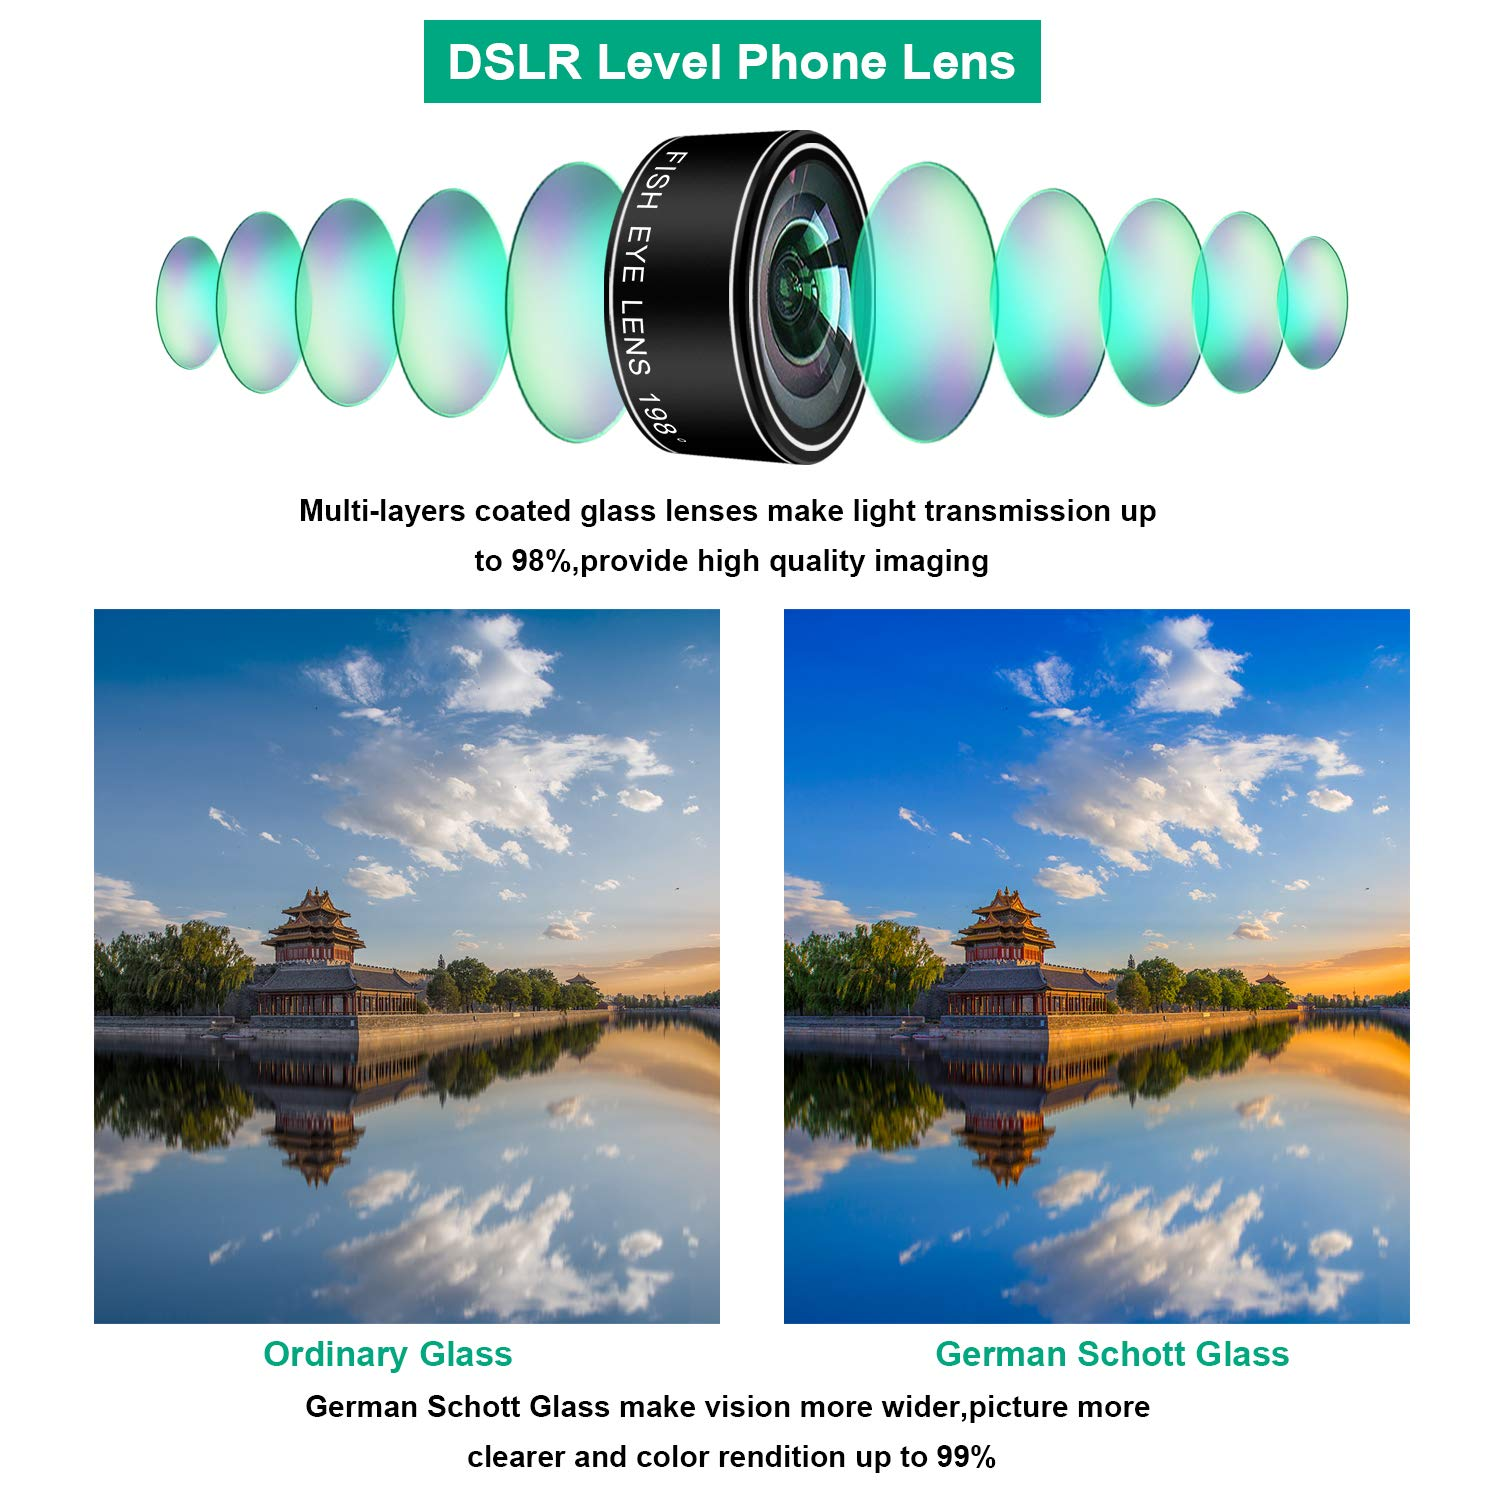 Phone Camera Lens Kit,9 in 1 Kaiess Super Wide Angle+ Macro+ Fisheye Lens +Telephoto+ CPL+Kaleidoscope+Starburst Lens for iPhone X/8/7/6s/6 Plus, Samsung,Android Smartphones(Matte Black) by Kaiess (Image #2)